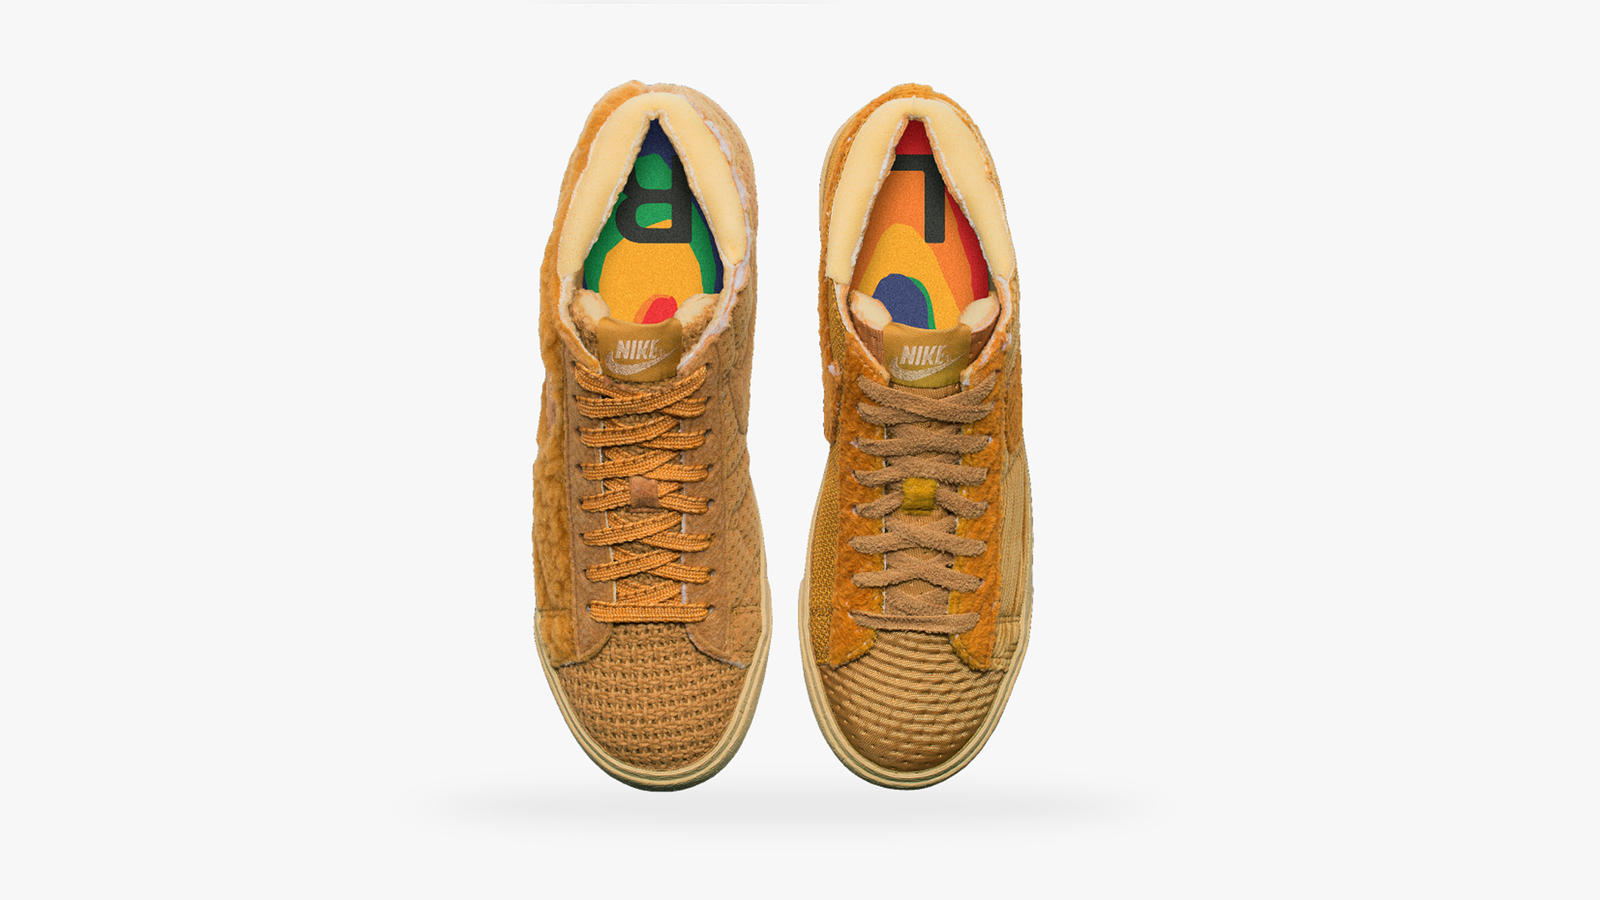 Nike Blazer CPFM Sponge By You official Release Info 11